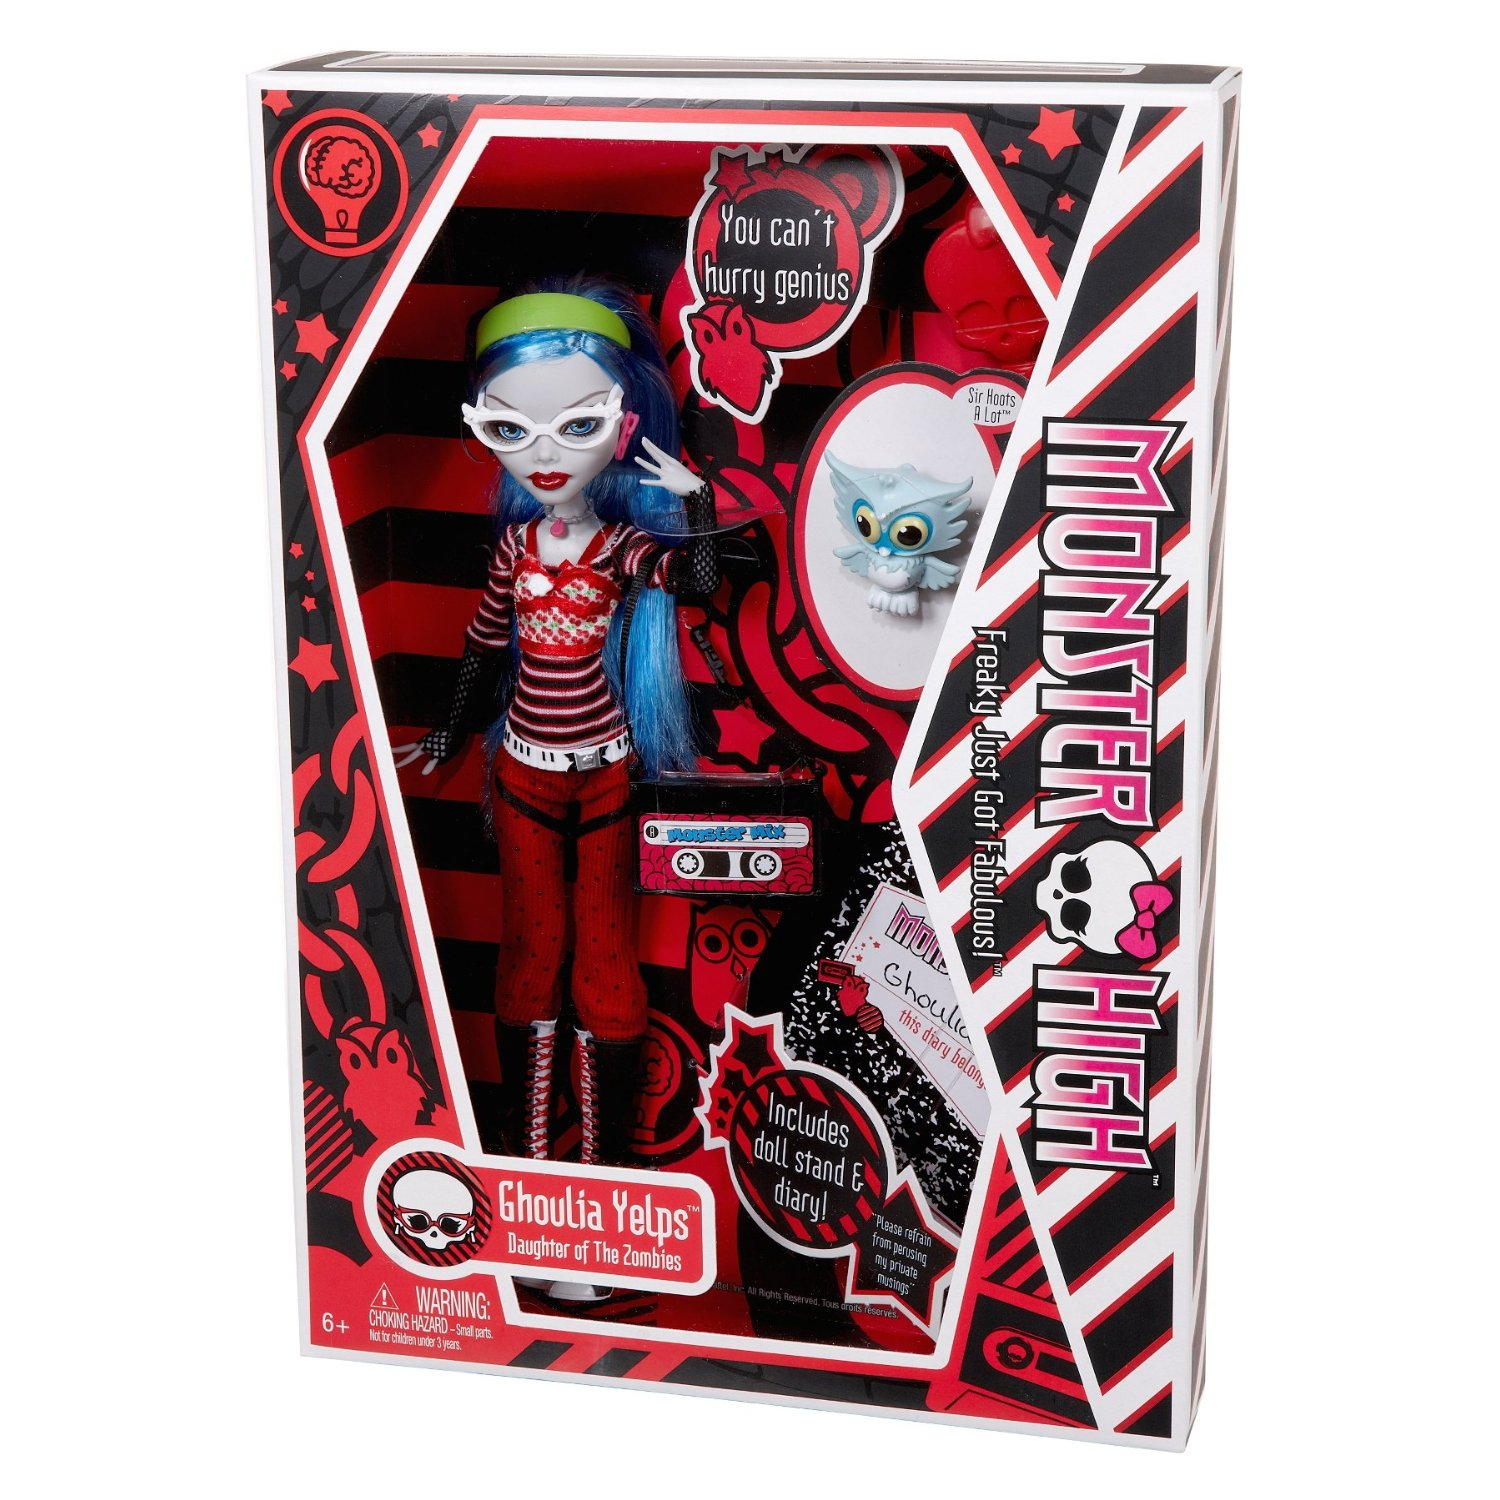 Monster High Libros Libros Y Juguetes 1demagiaxfa Toys Ghoulia Yelps